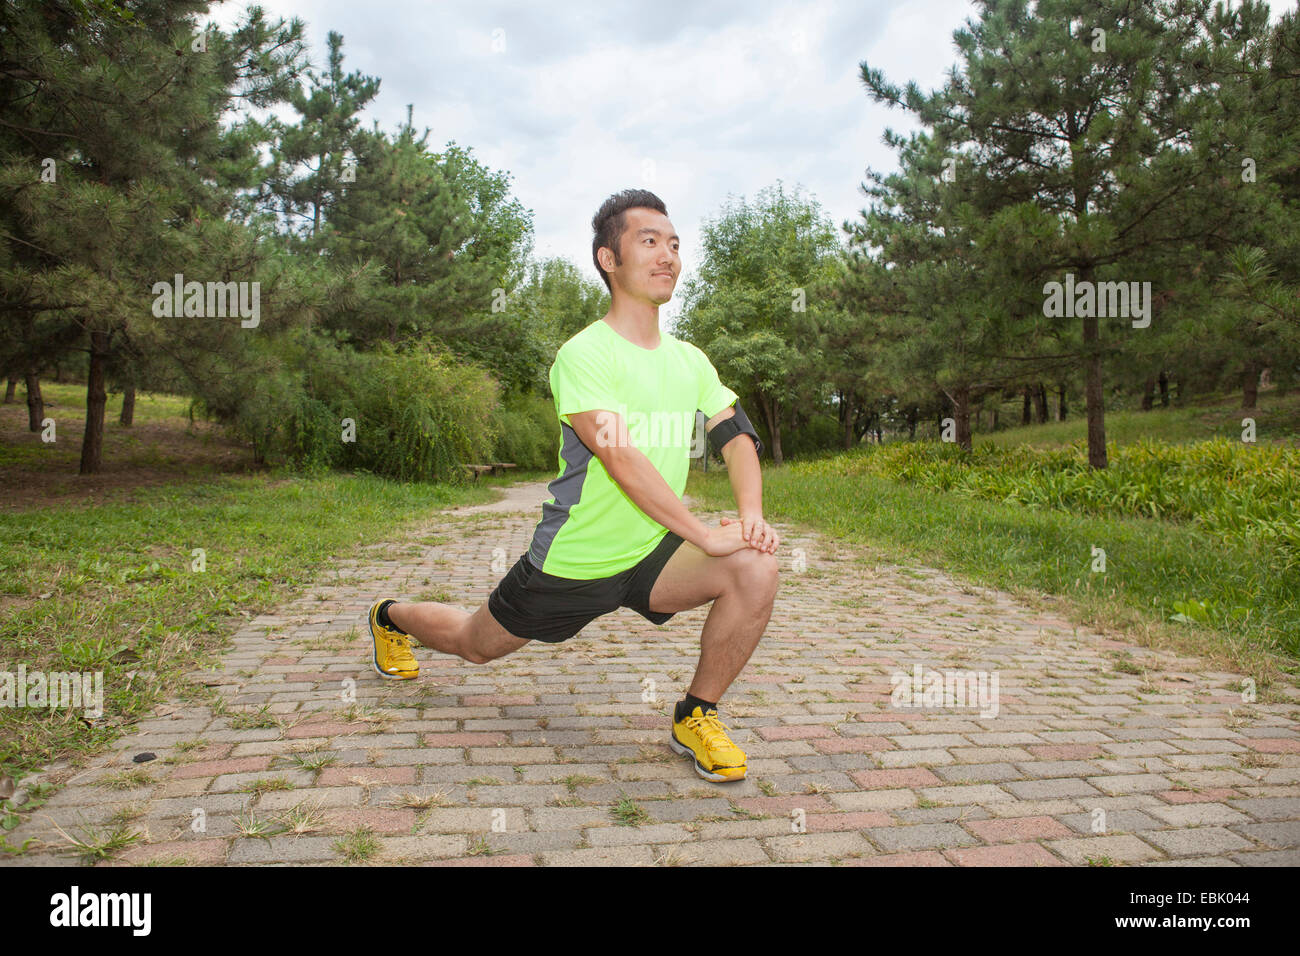 Young male runner stretching legs in park - Stock Image